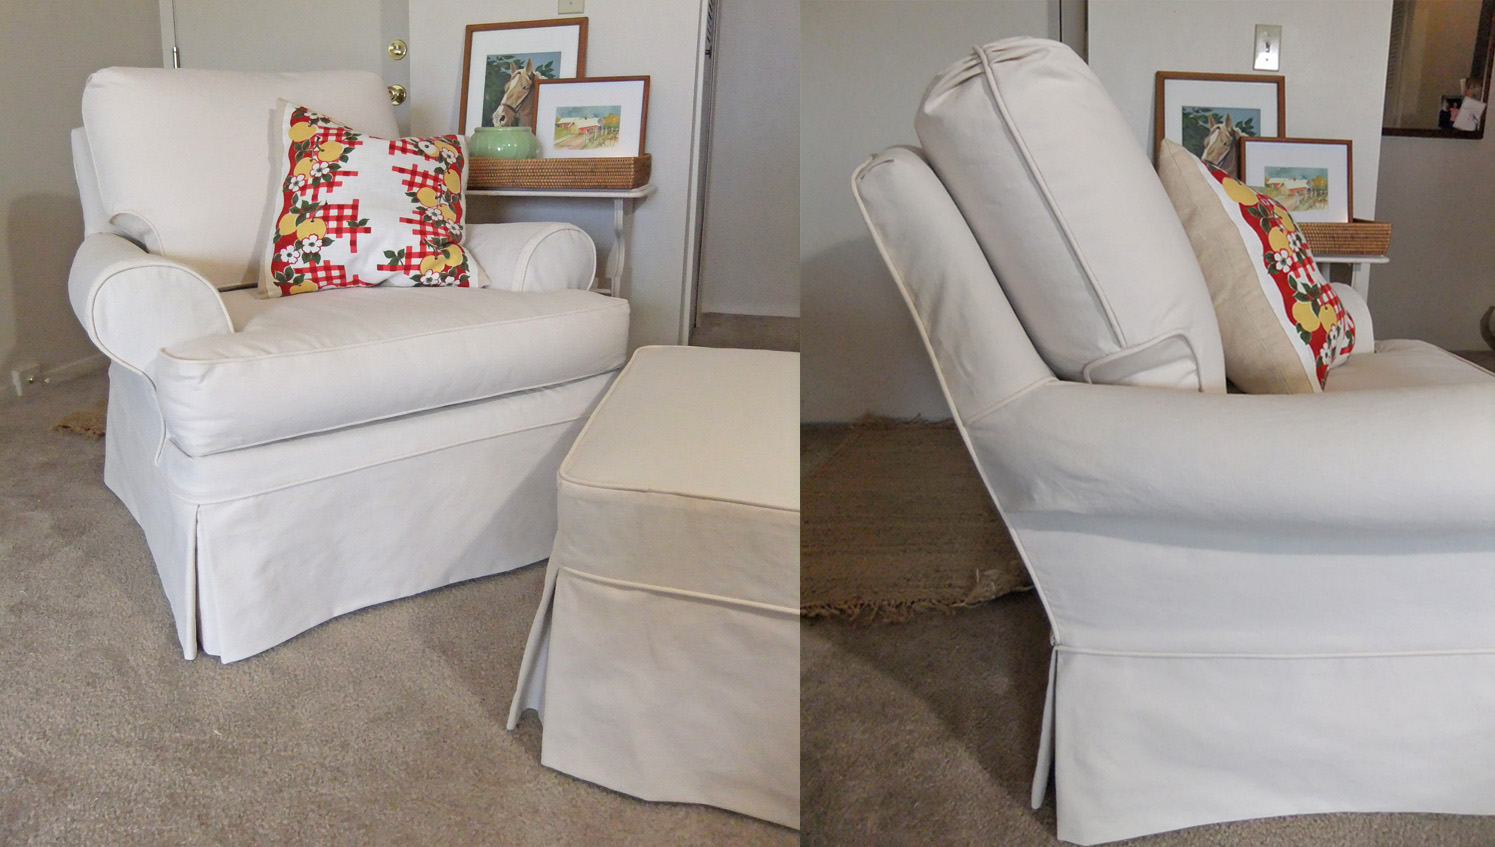 chair slipcovers | The Slipcover Maker | Page 2